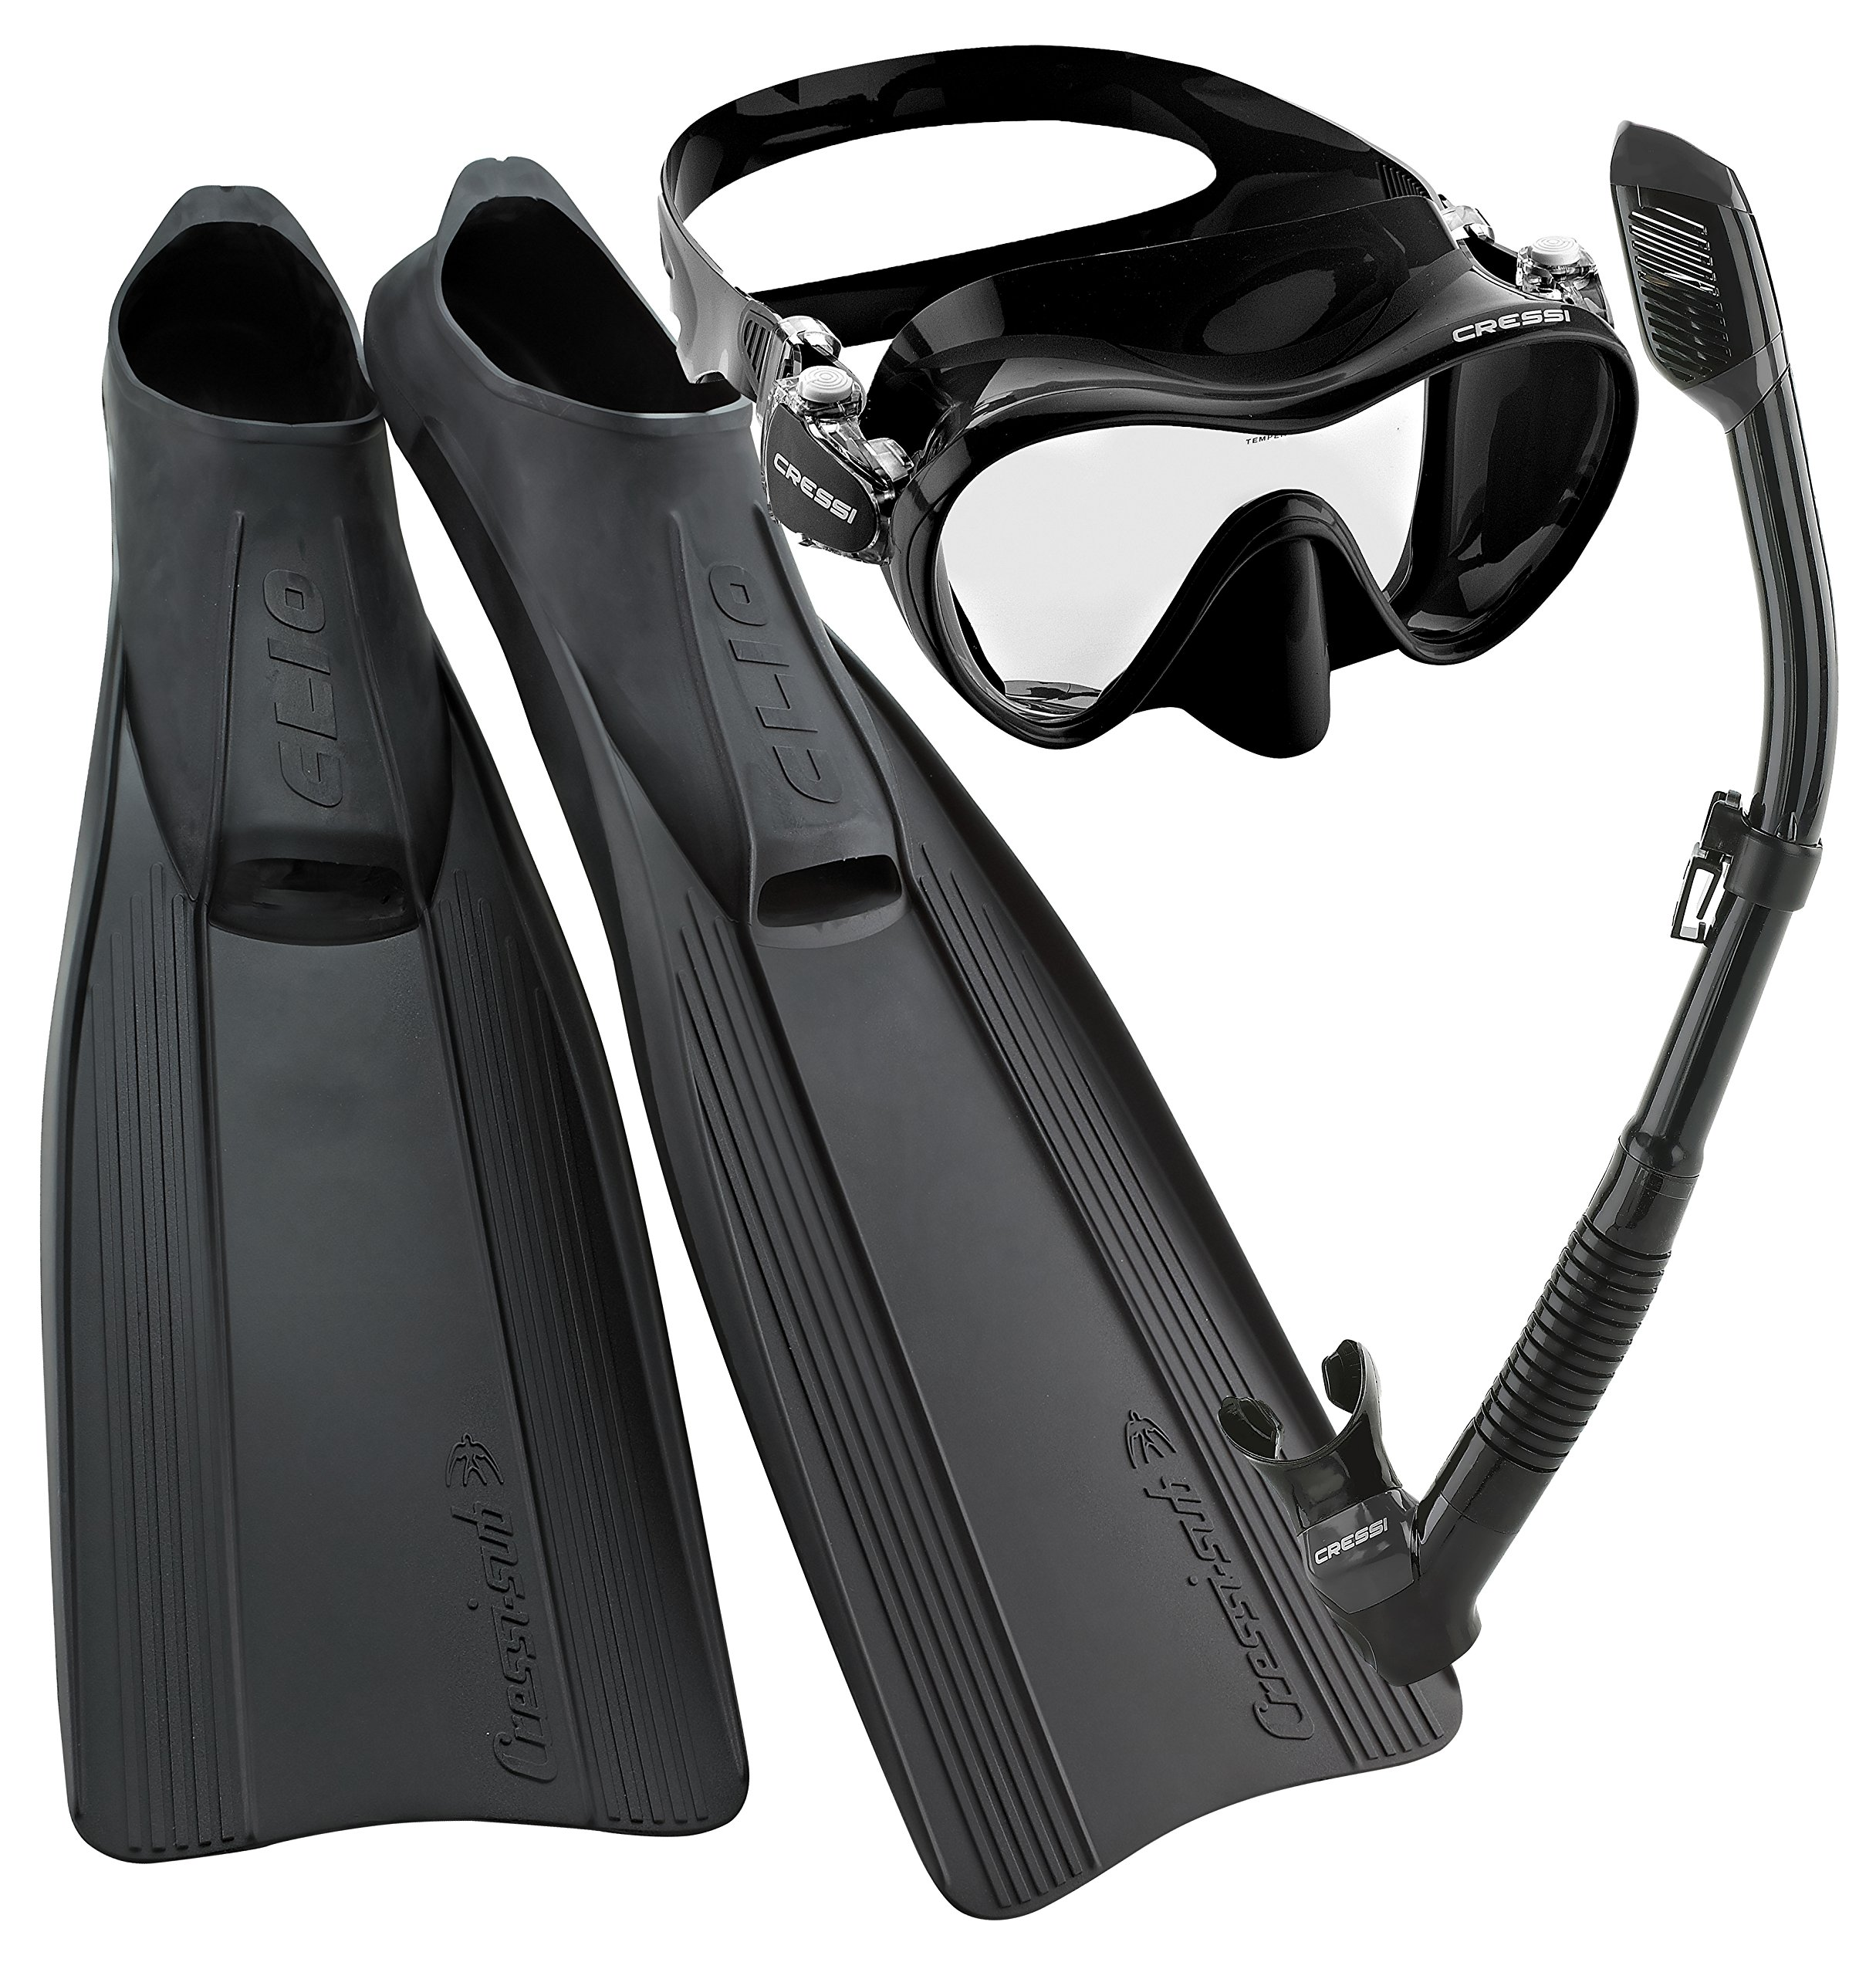 Cressi Clio Full Foot Fin Frameless Mask Dry Snorkel Set with Carry Bag, Black, Size 10/11-Size 45/46 by Cressi